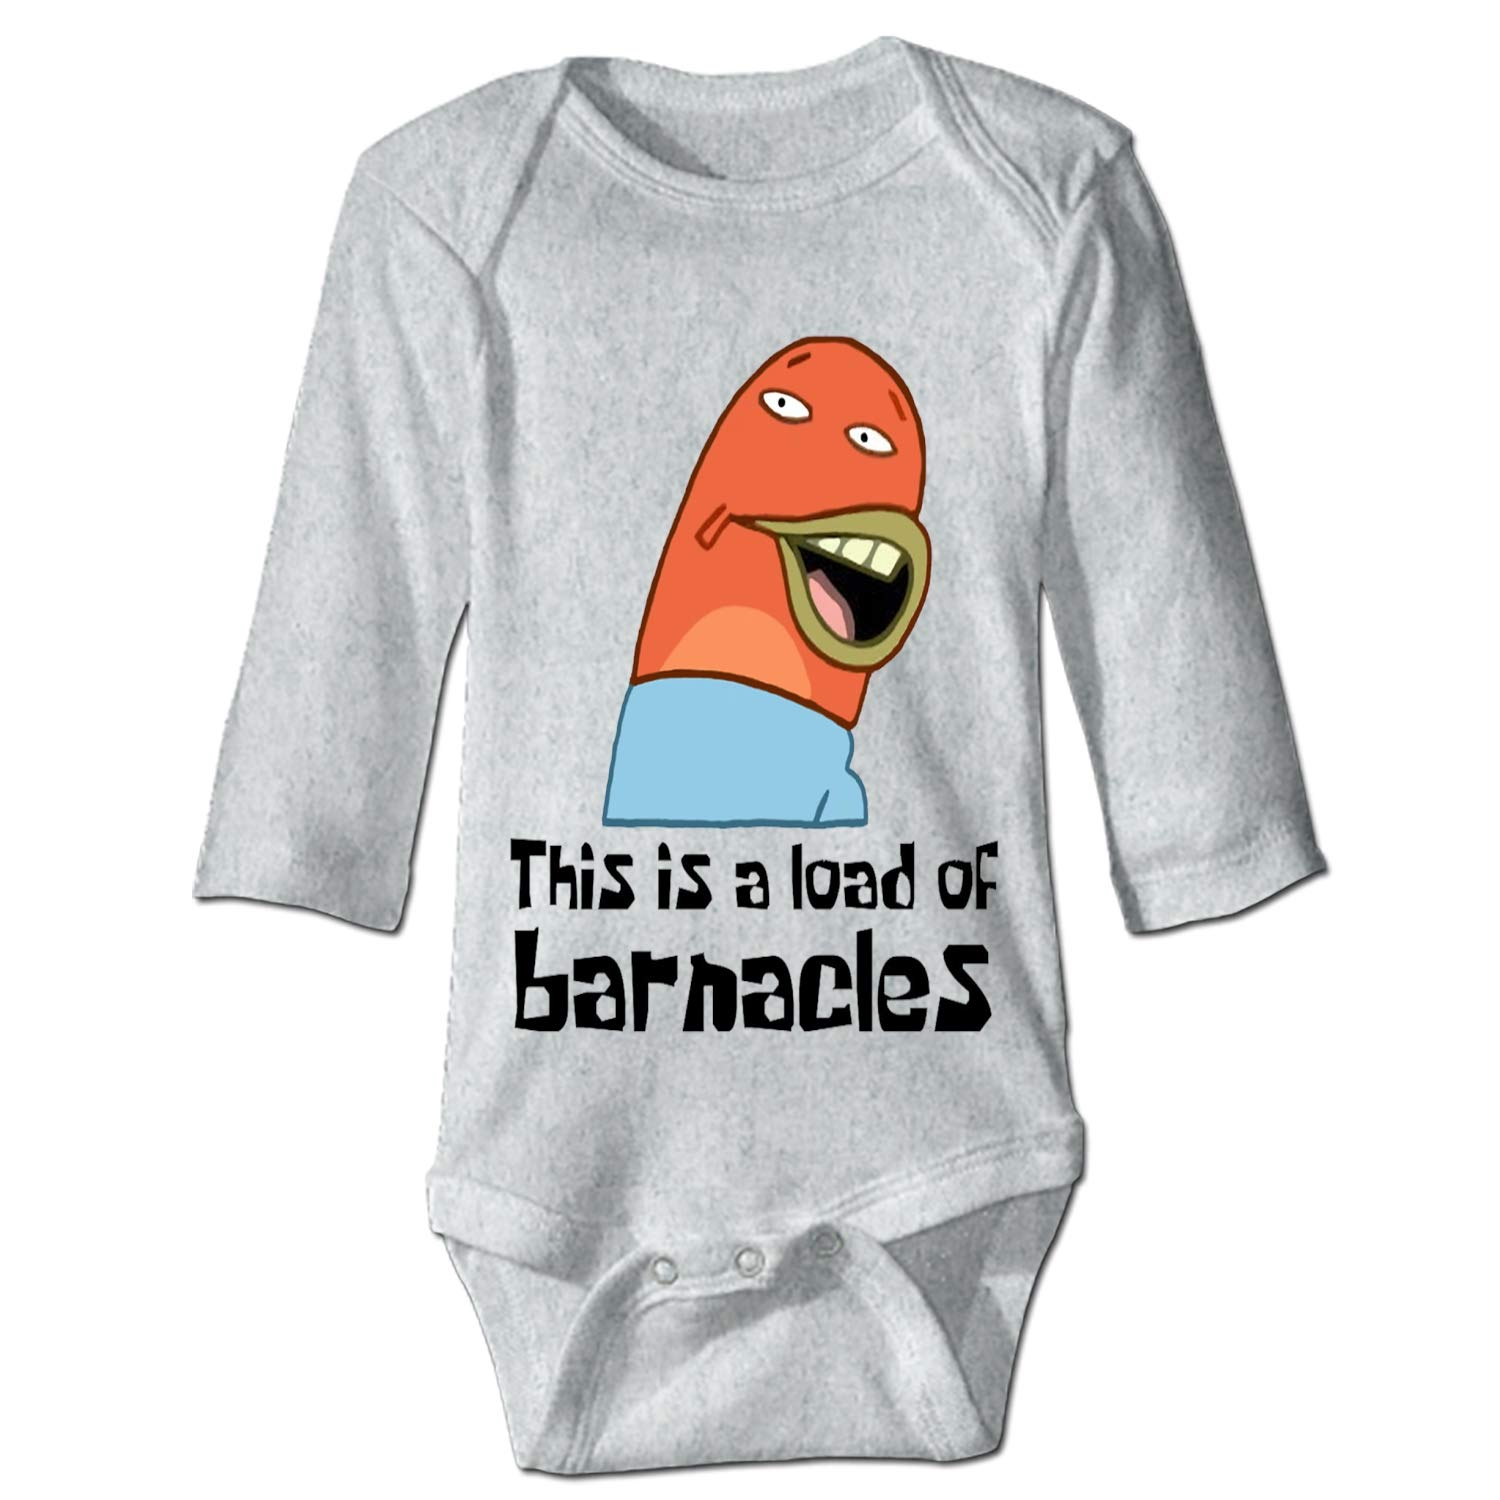 Imiss Barnacles Cool Shirt Funny Gift Baby